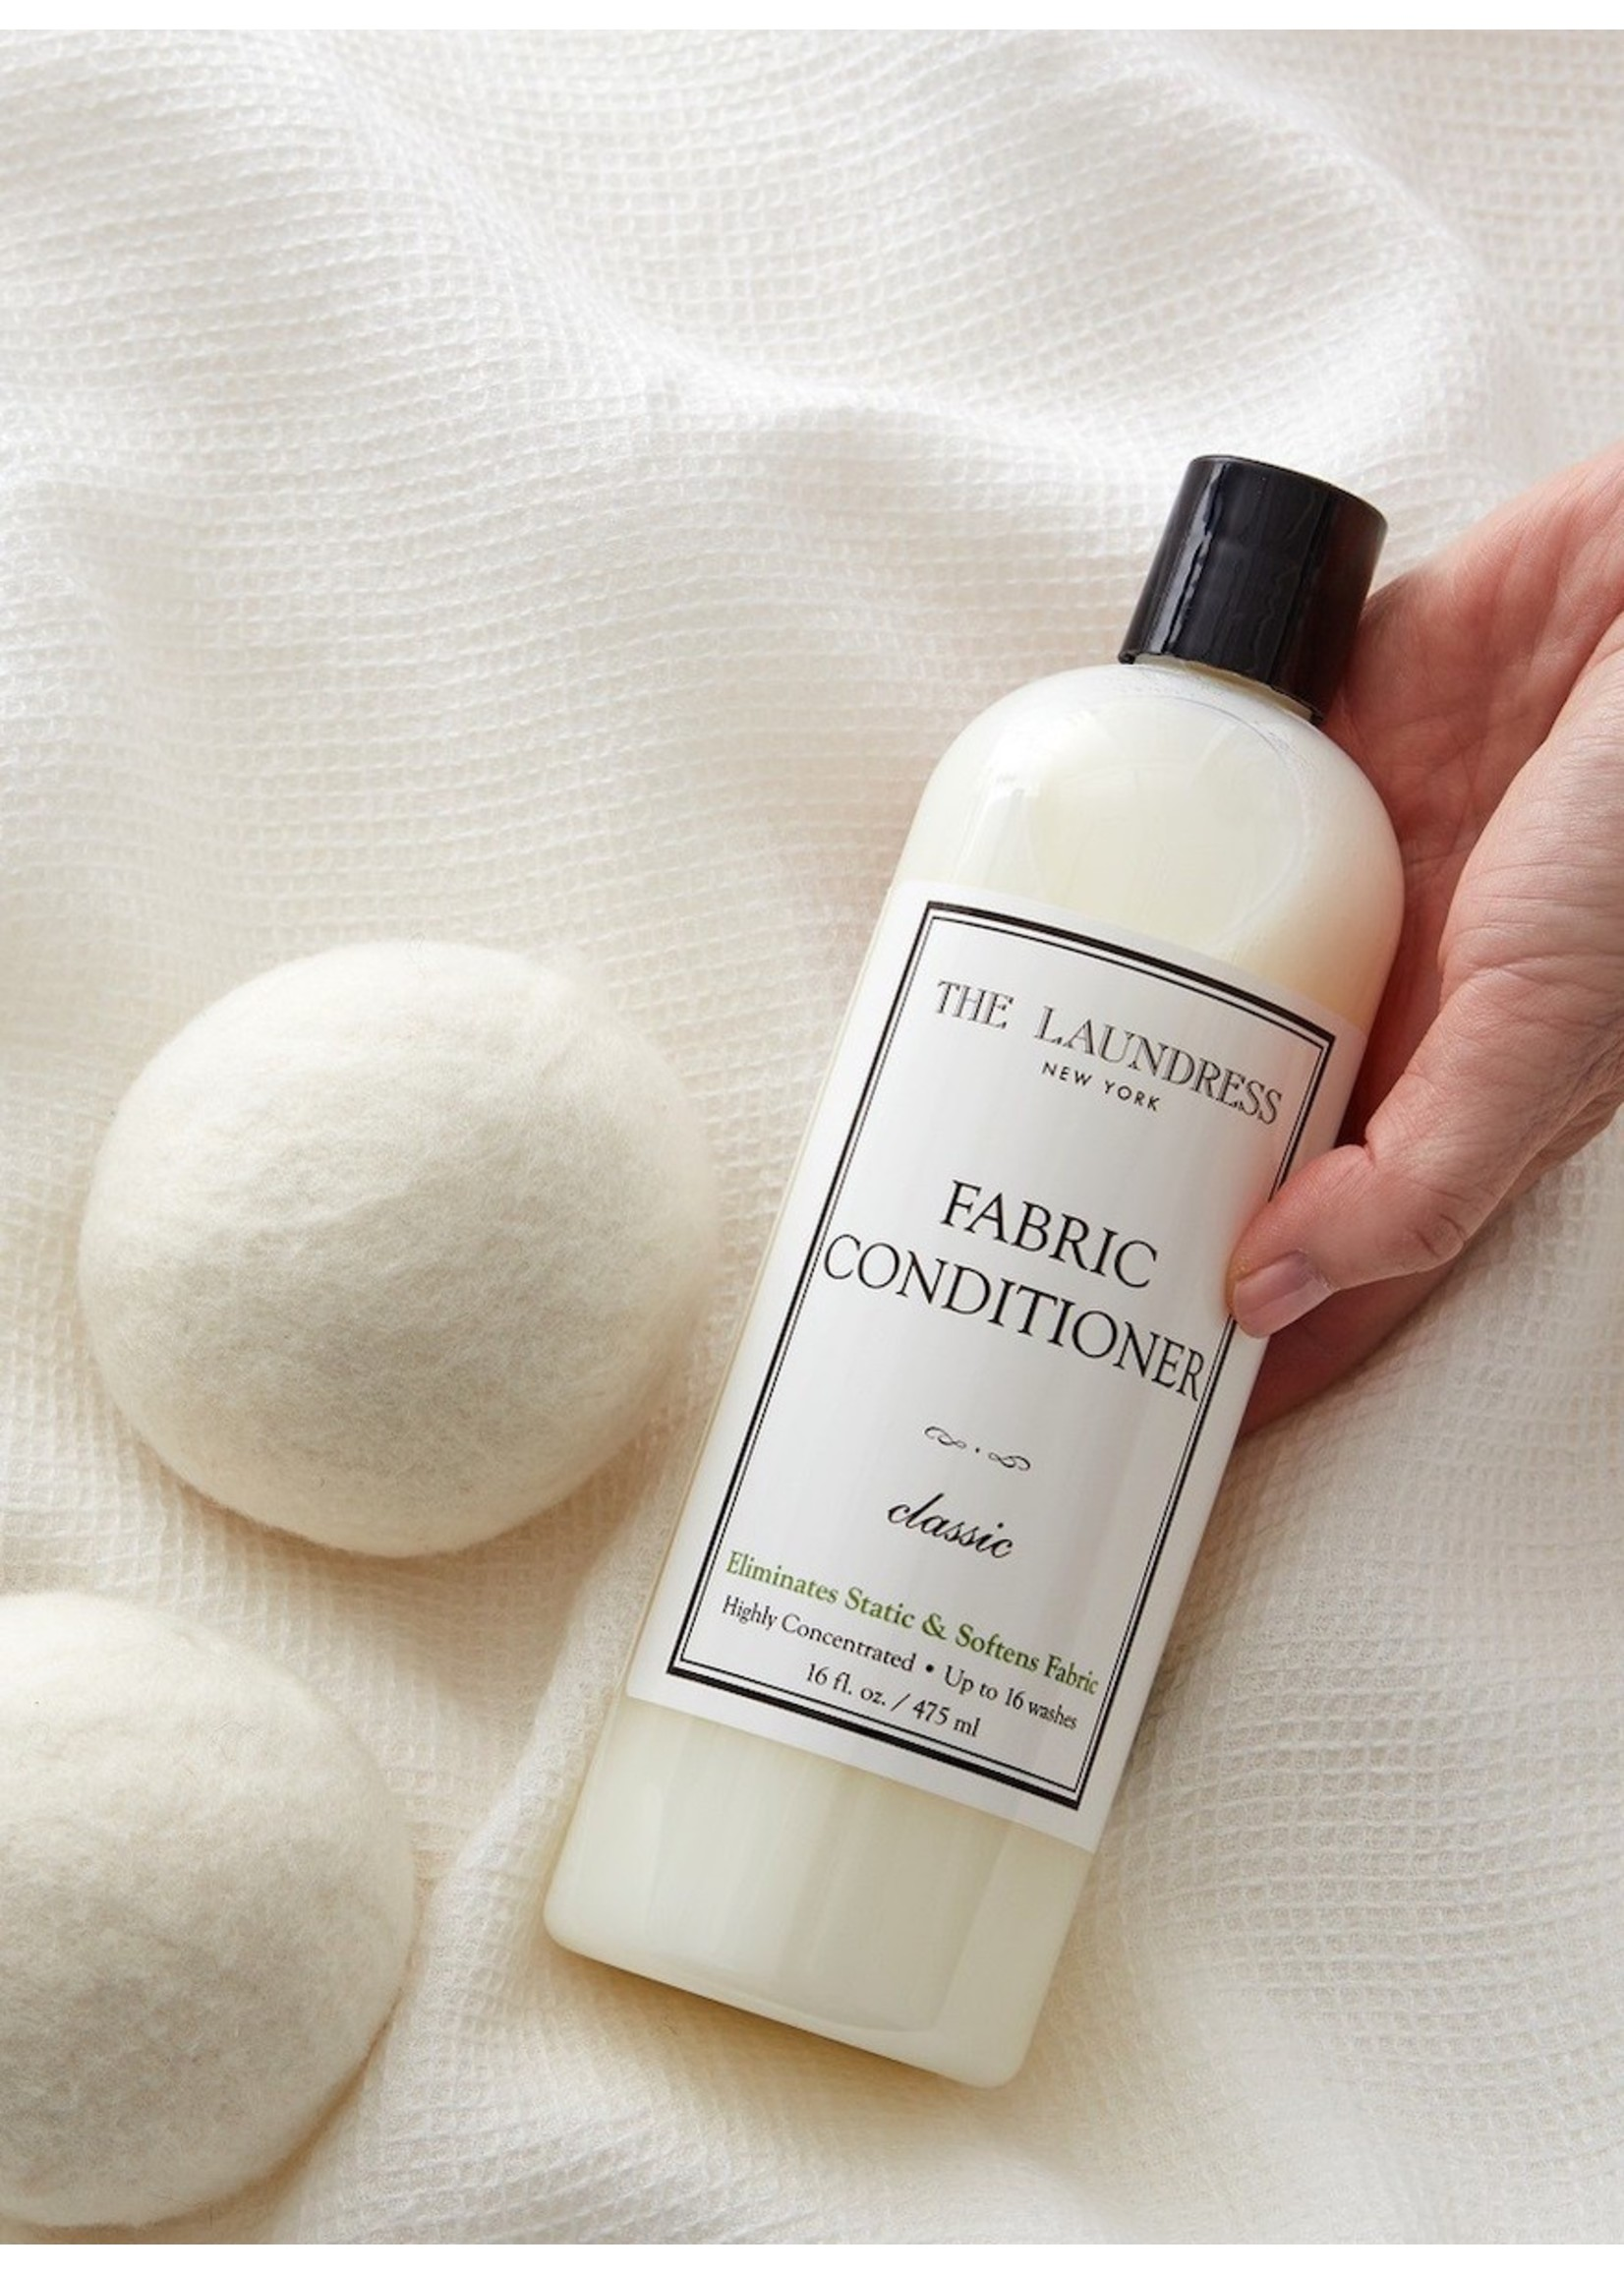 The Laundress New York Fabric Conditioner